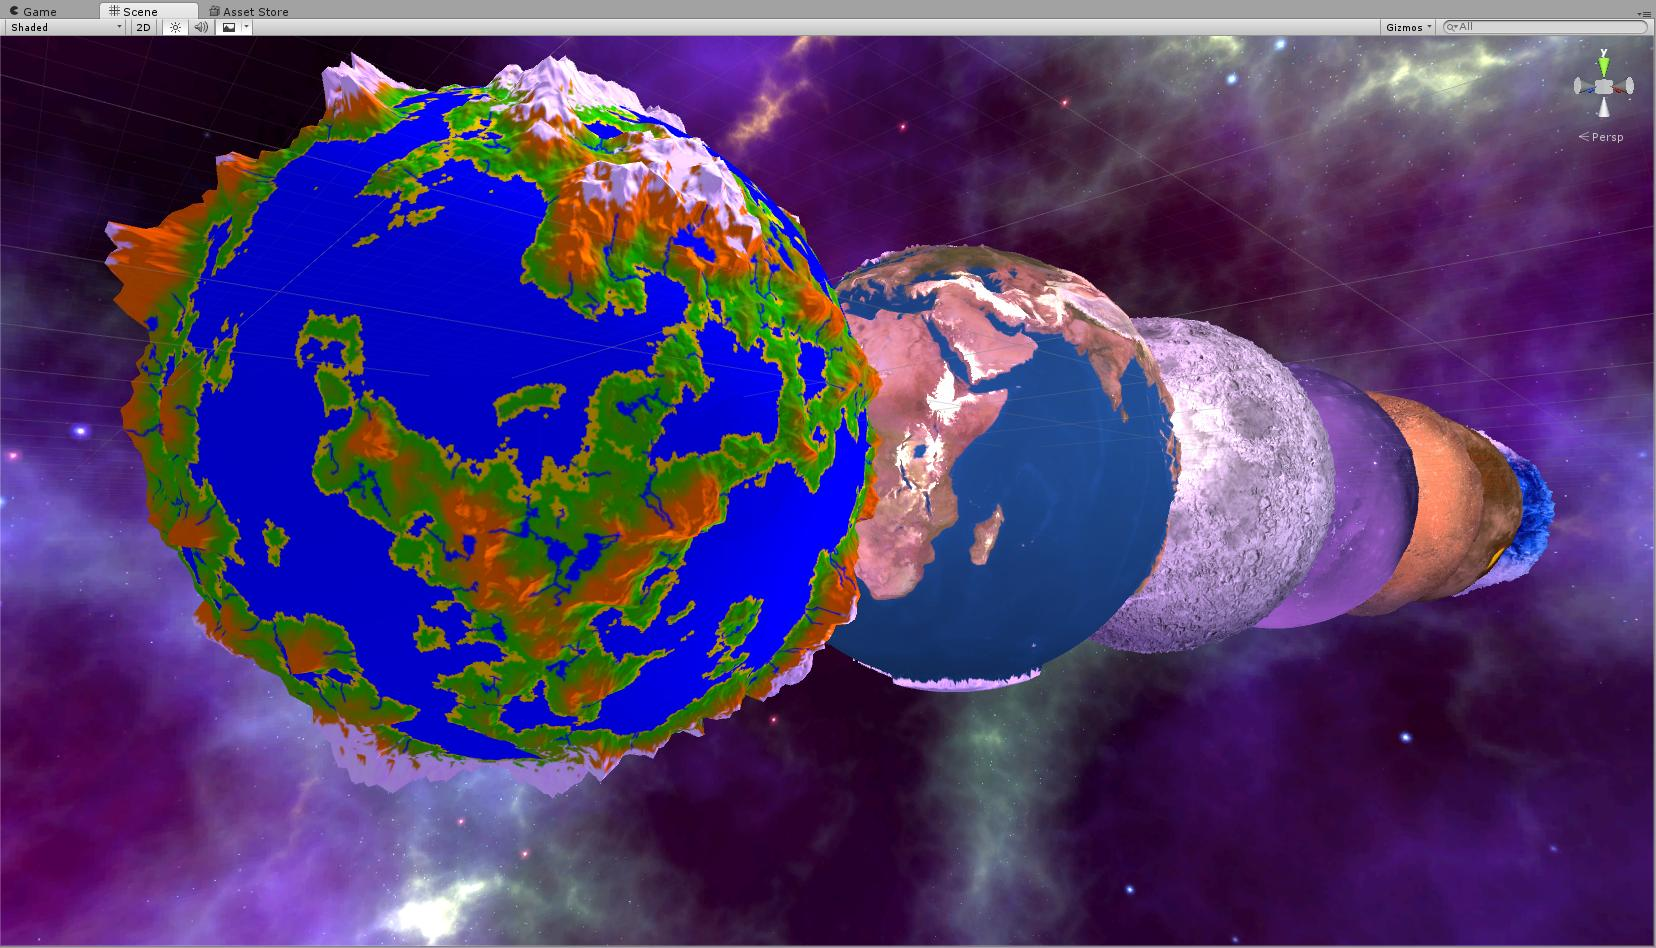 Height-map on Sphere, Which method is best? - Unity Forum